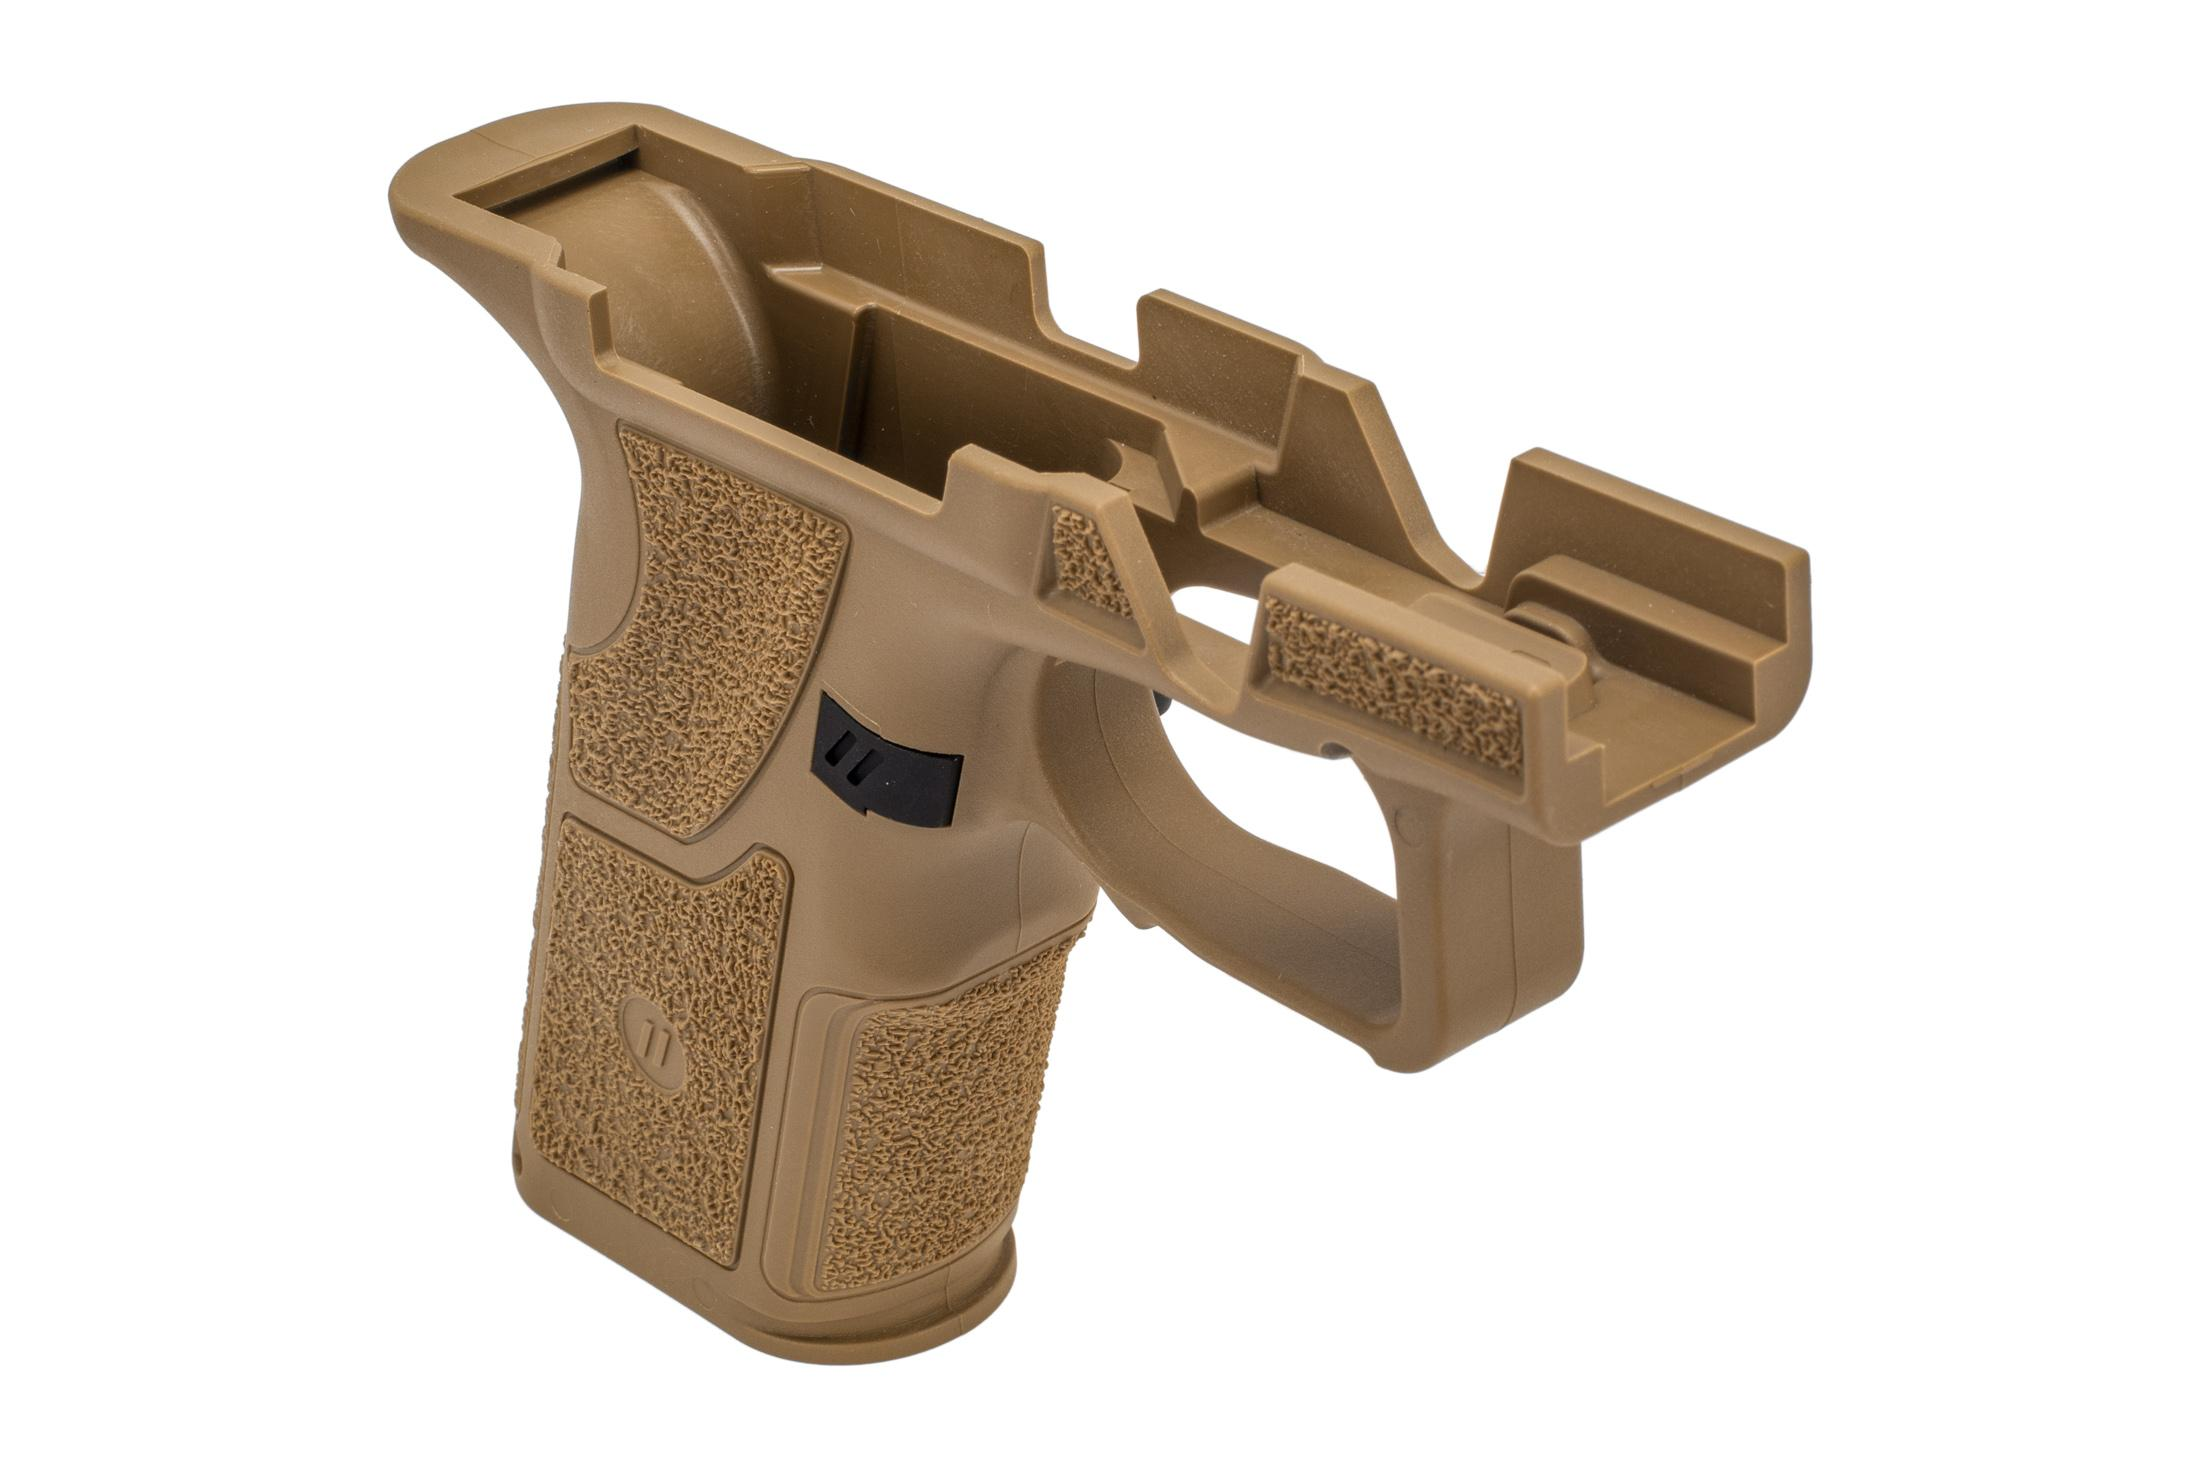 Zev Tech Grip Module OZ9 FDE comes with a magazine release already installed